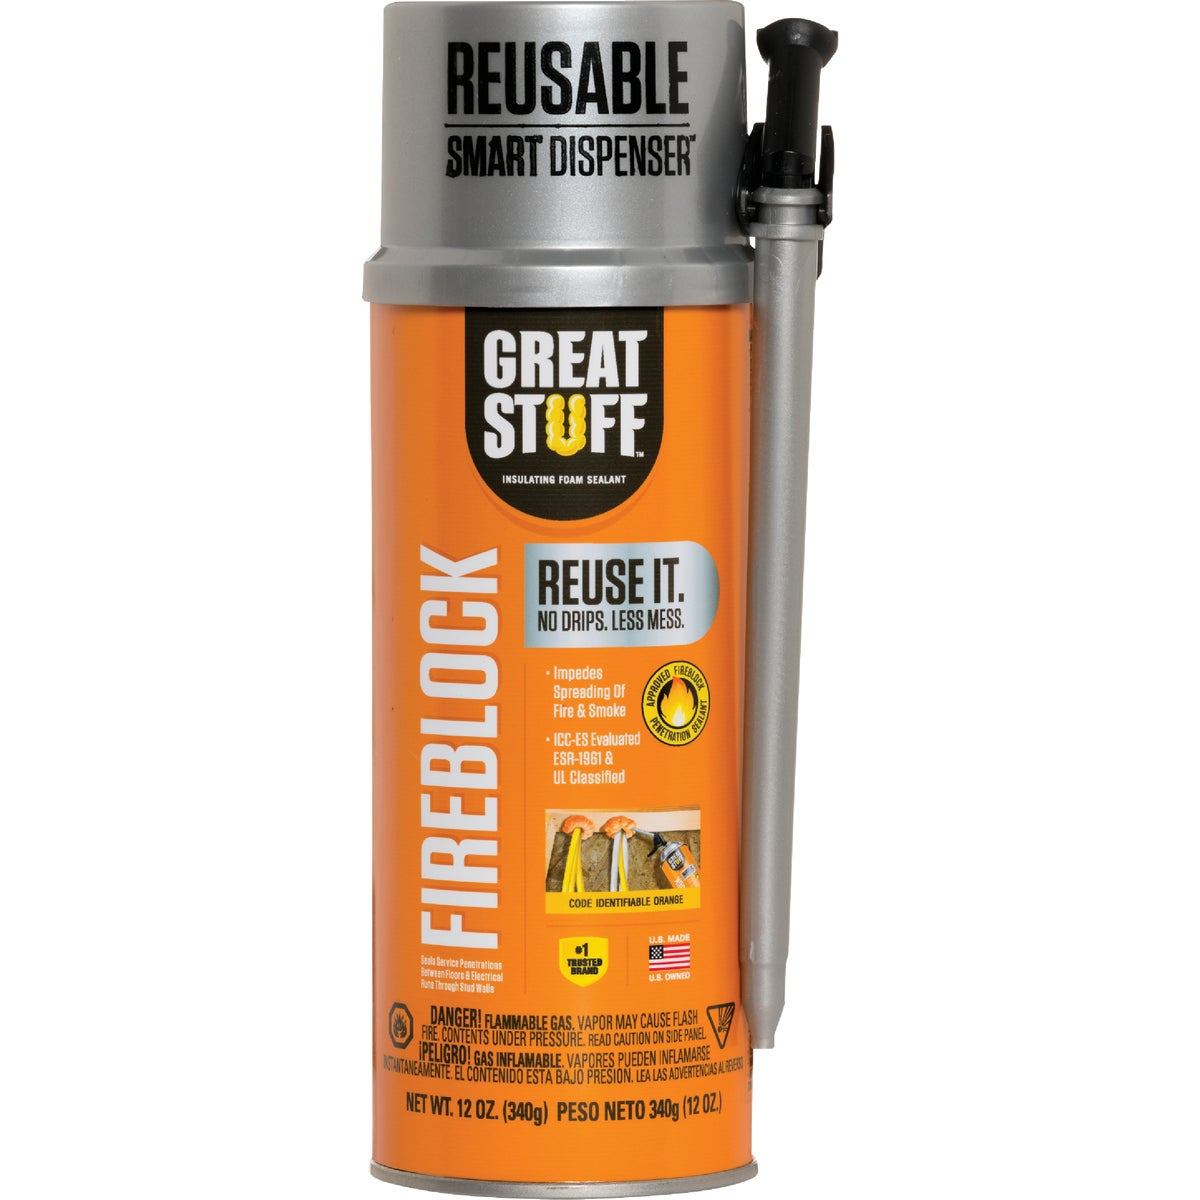 12OZ FIREBLOCK SEALANT - 306179 by Dow Chemical Company